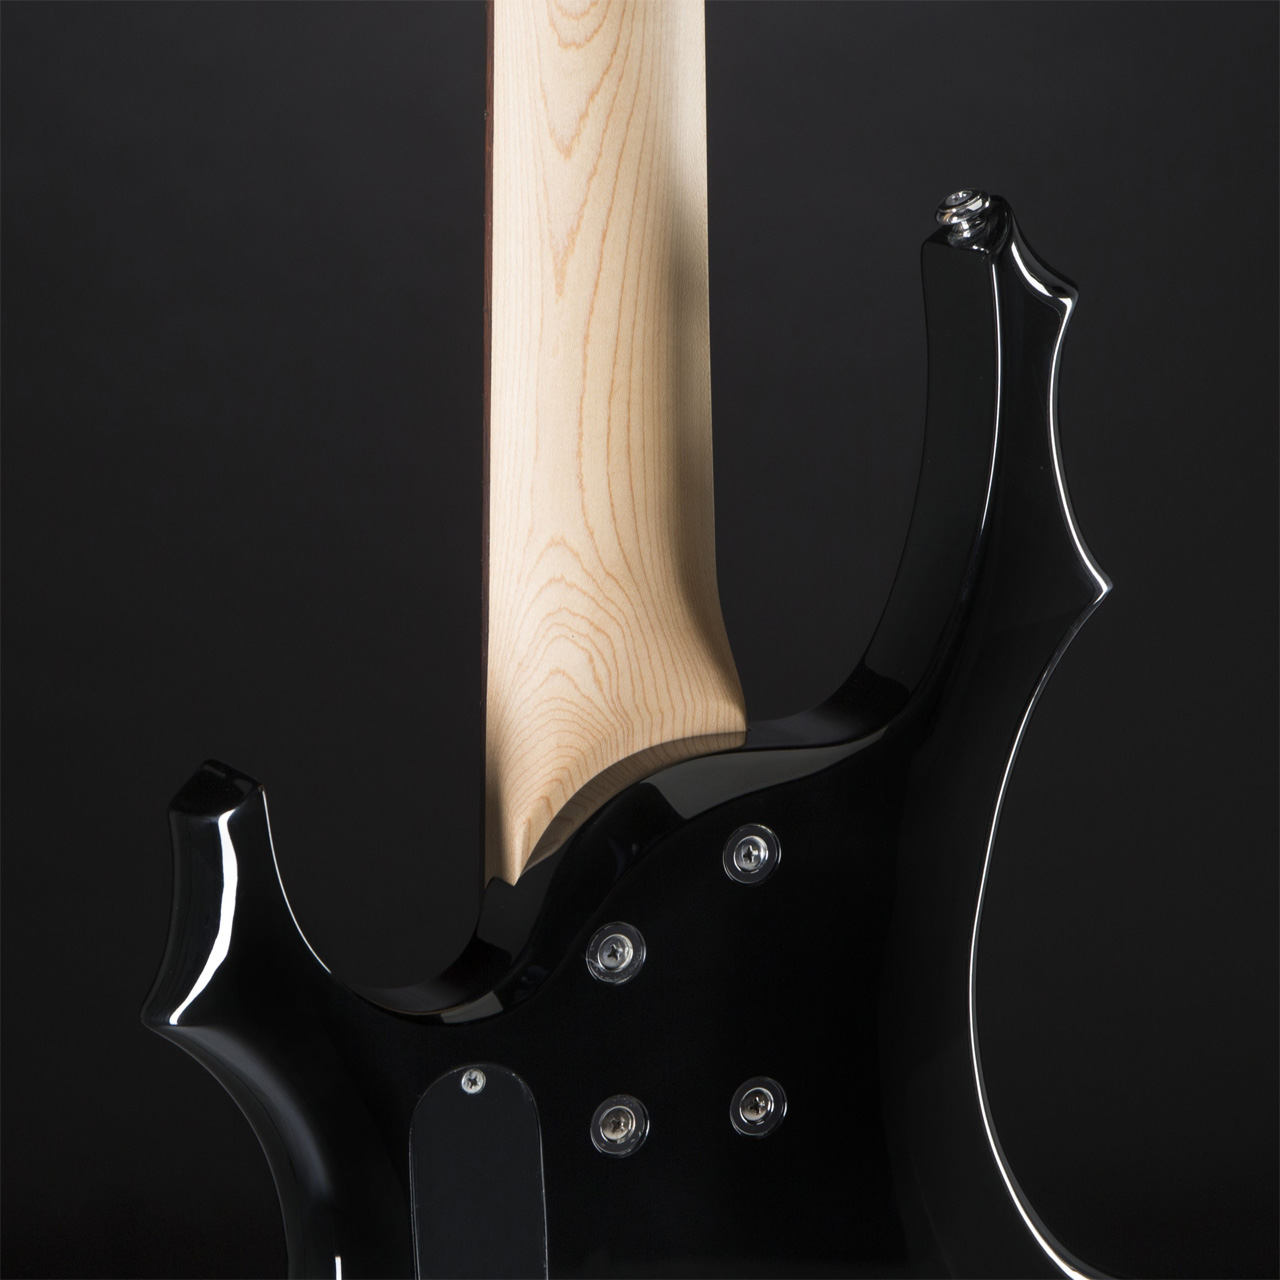 ESP LTD F-105 BK Black backside